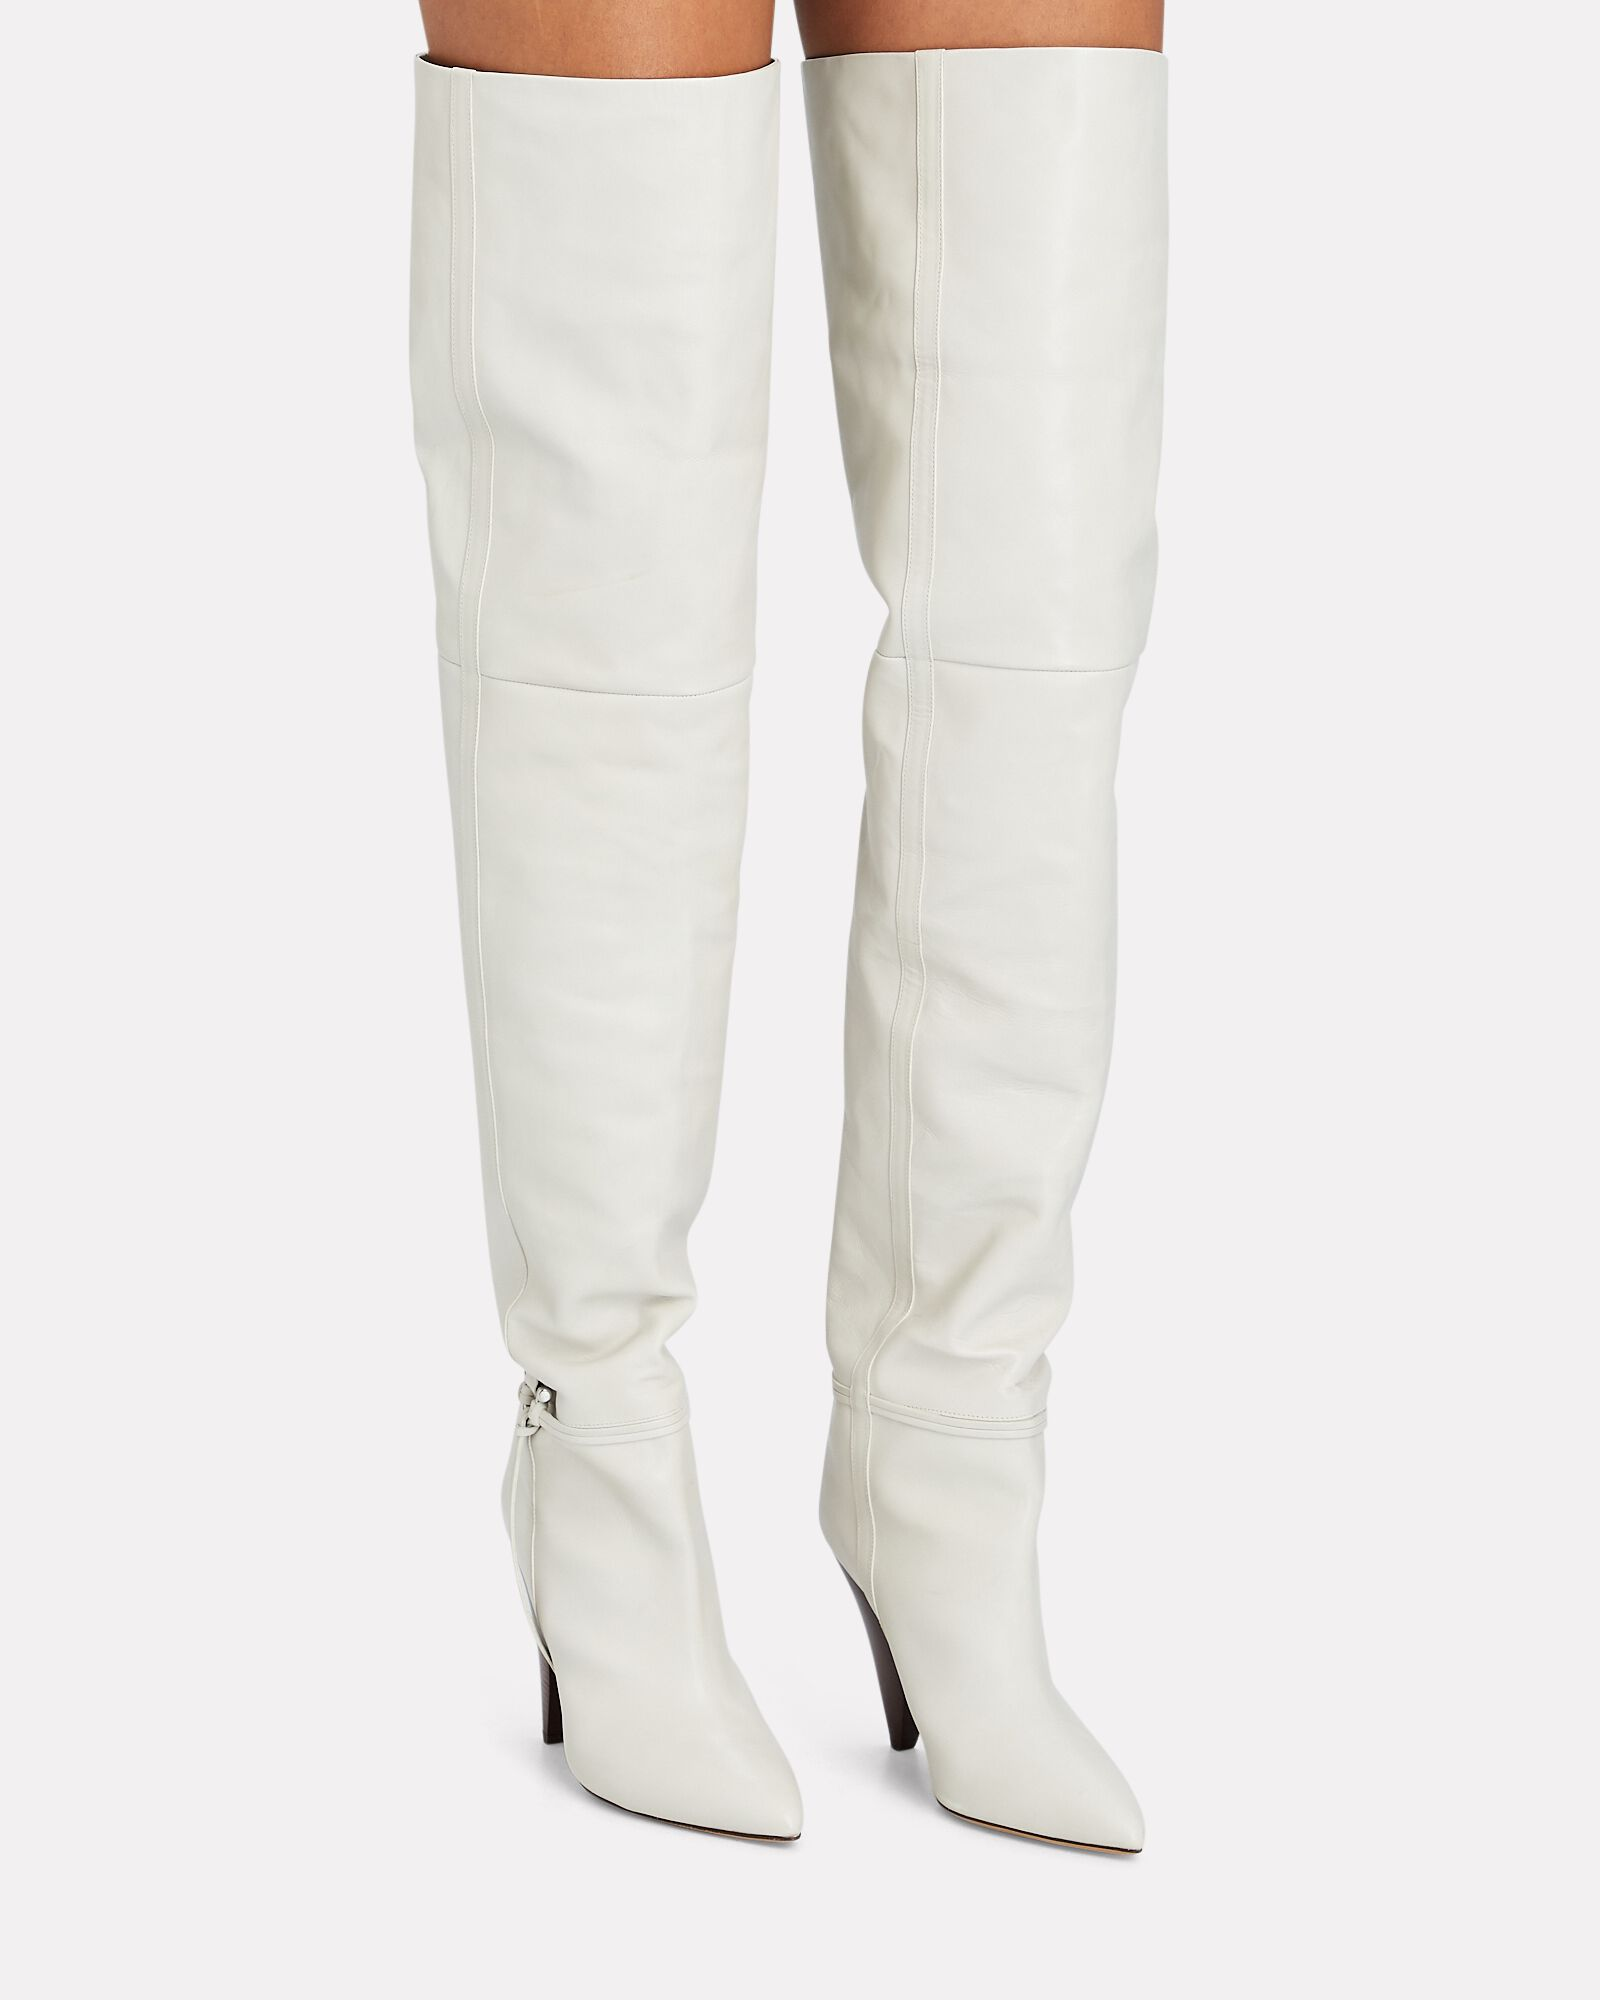 Lage Leather Over-the-Knee Boots, WHITE, hi-res